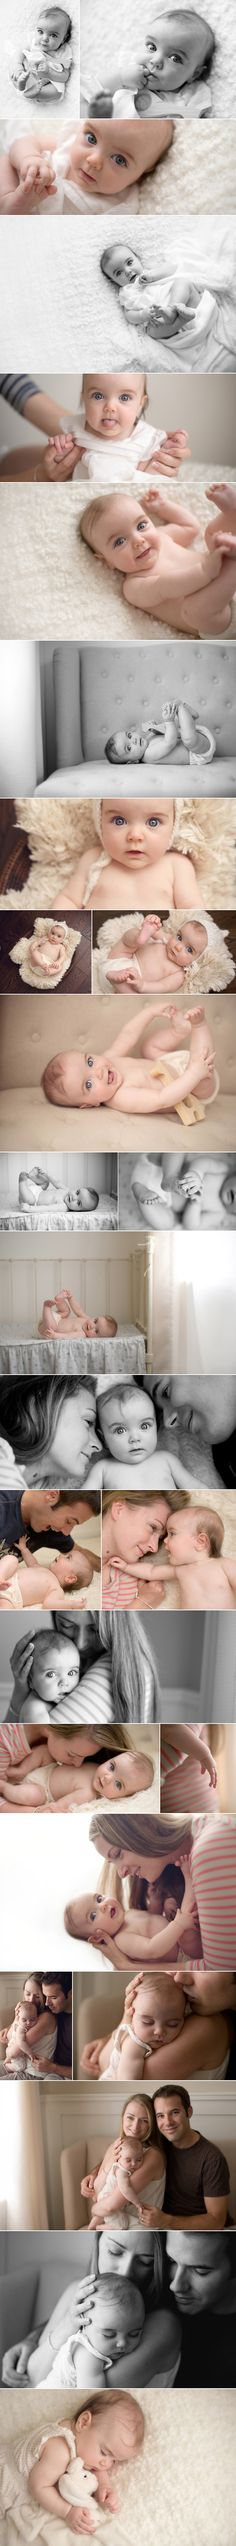 2-3 month old baby photos